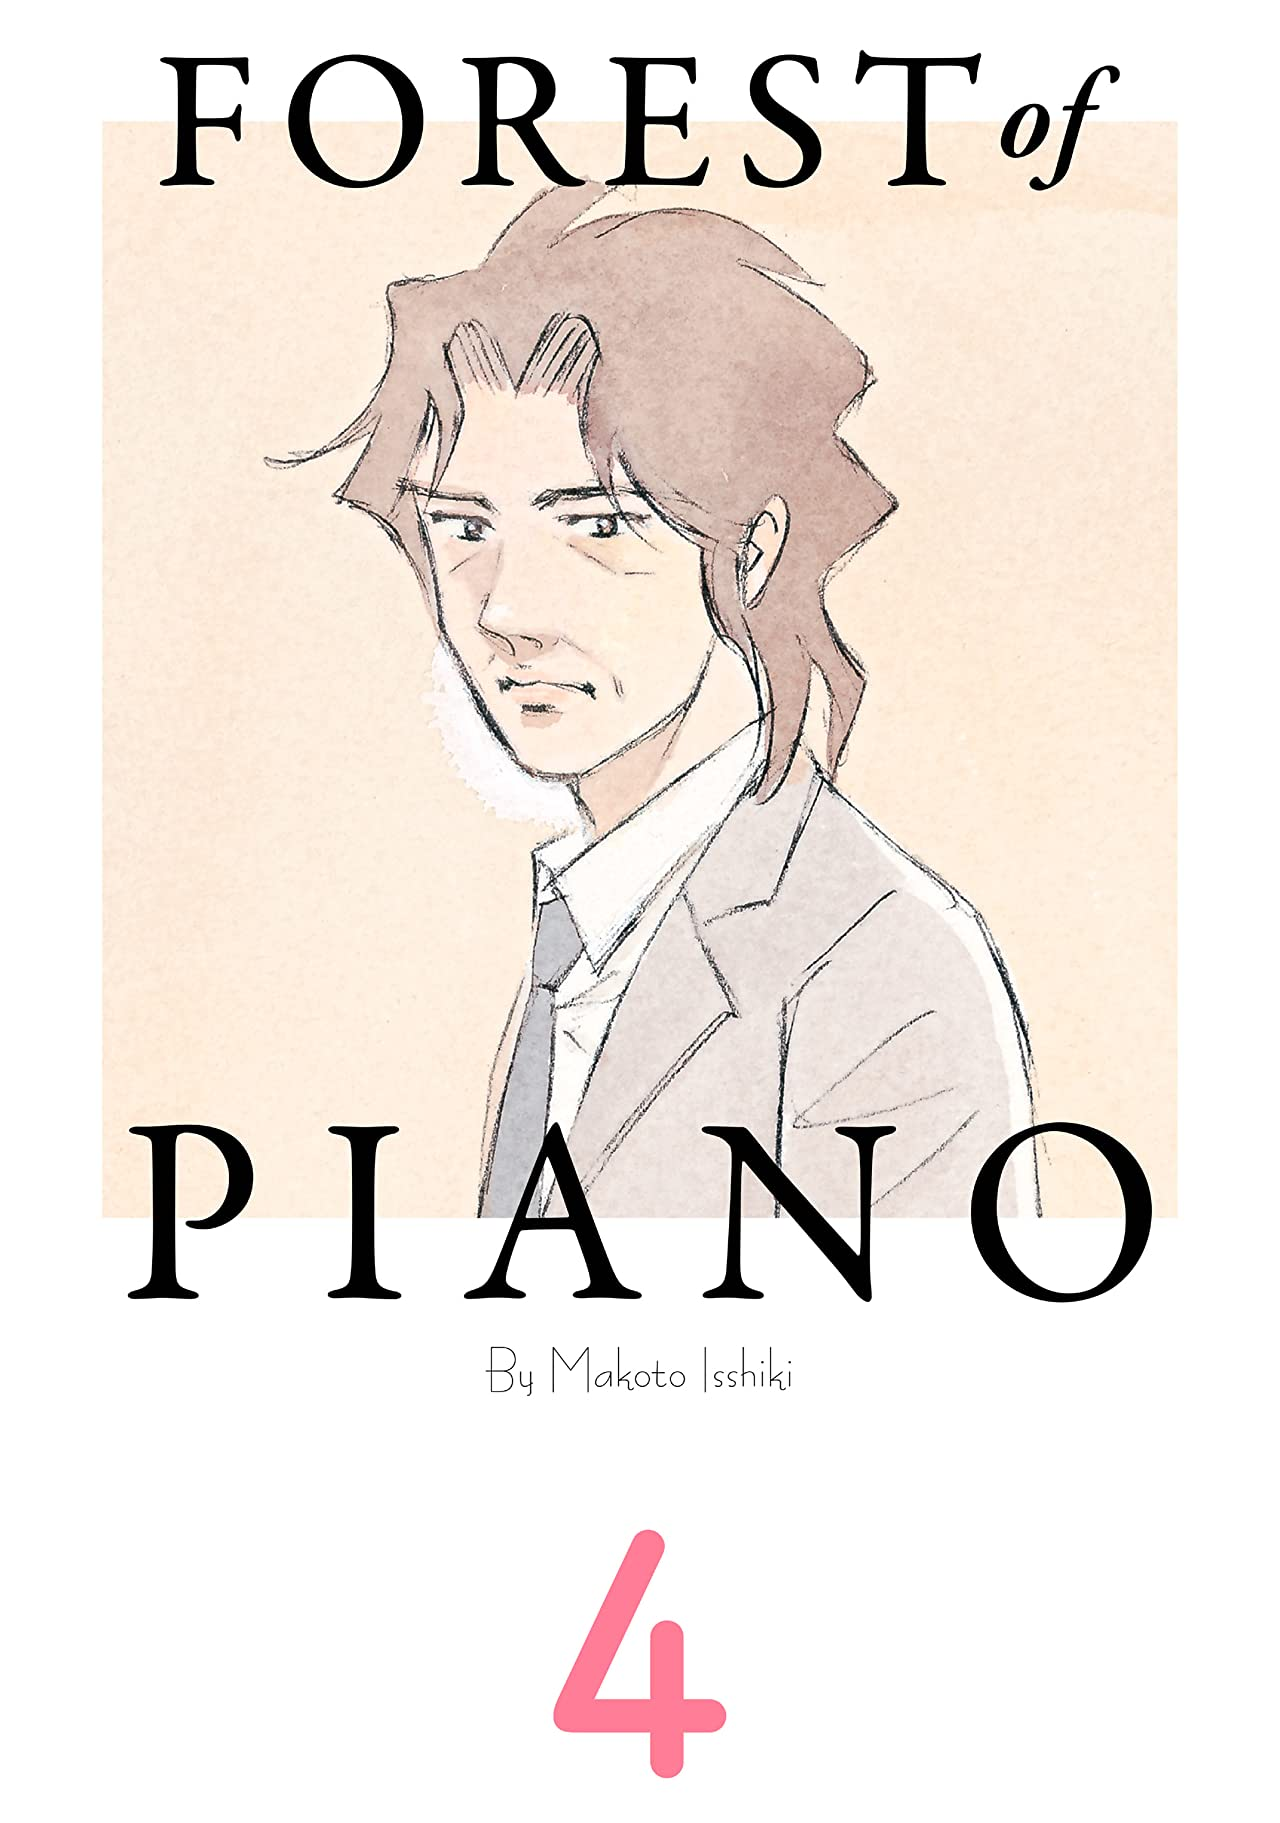 Forest of Piano Vol. 4